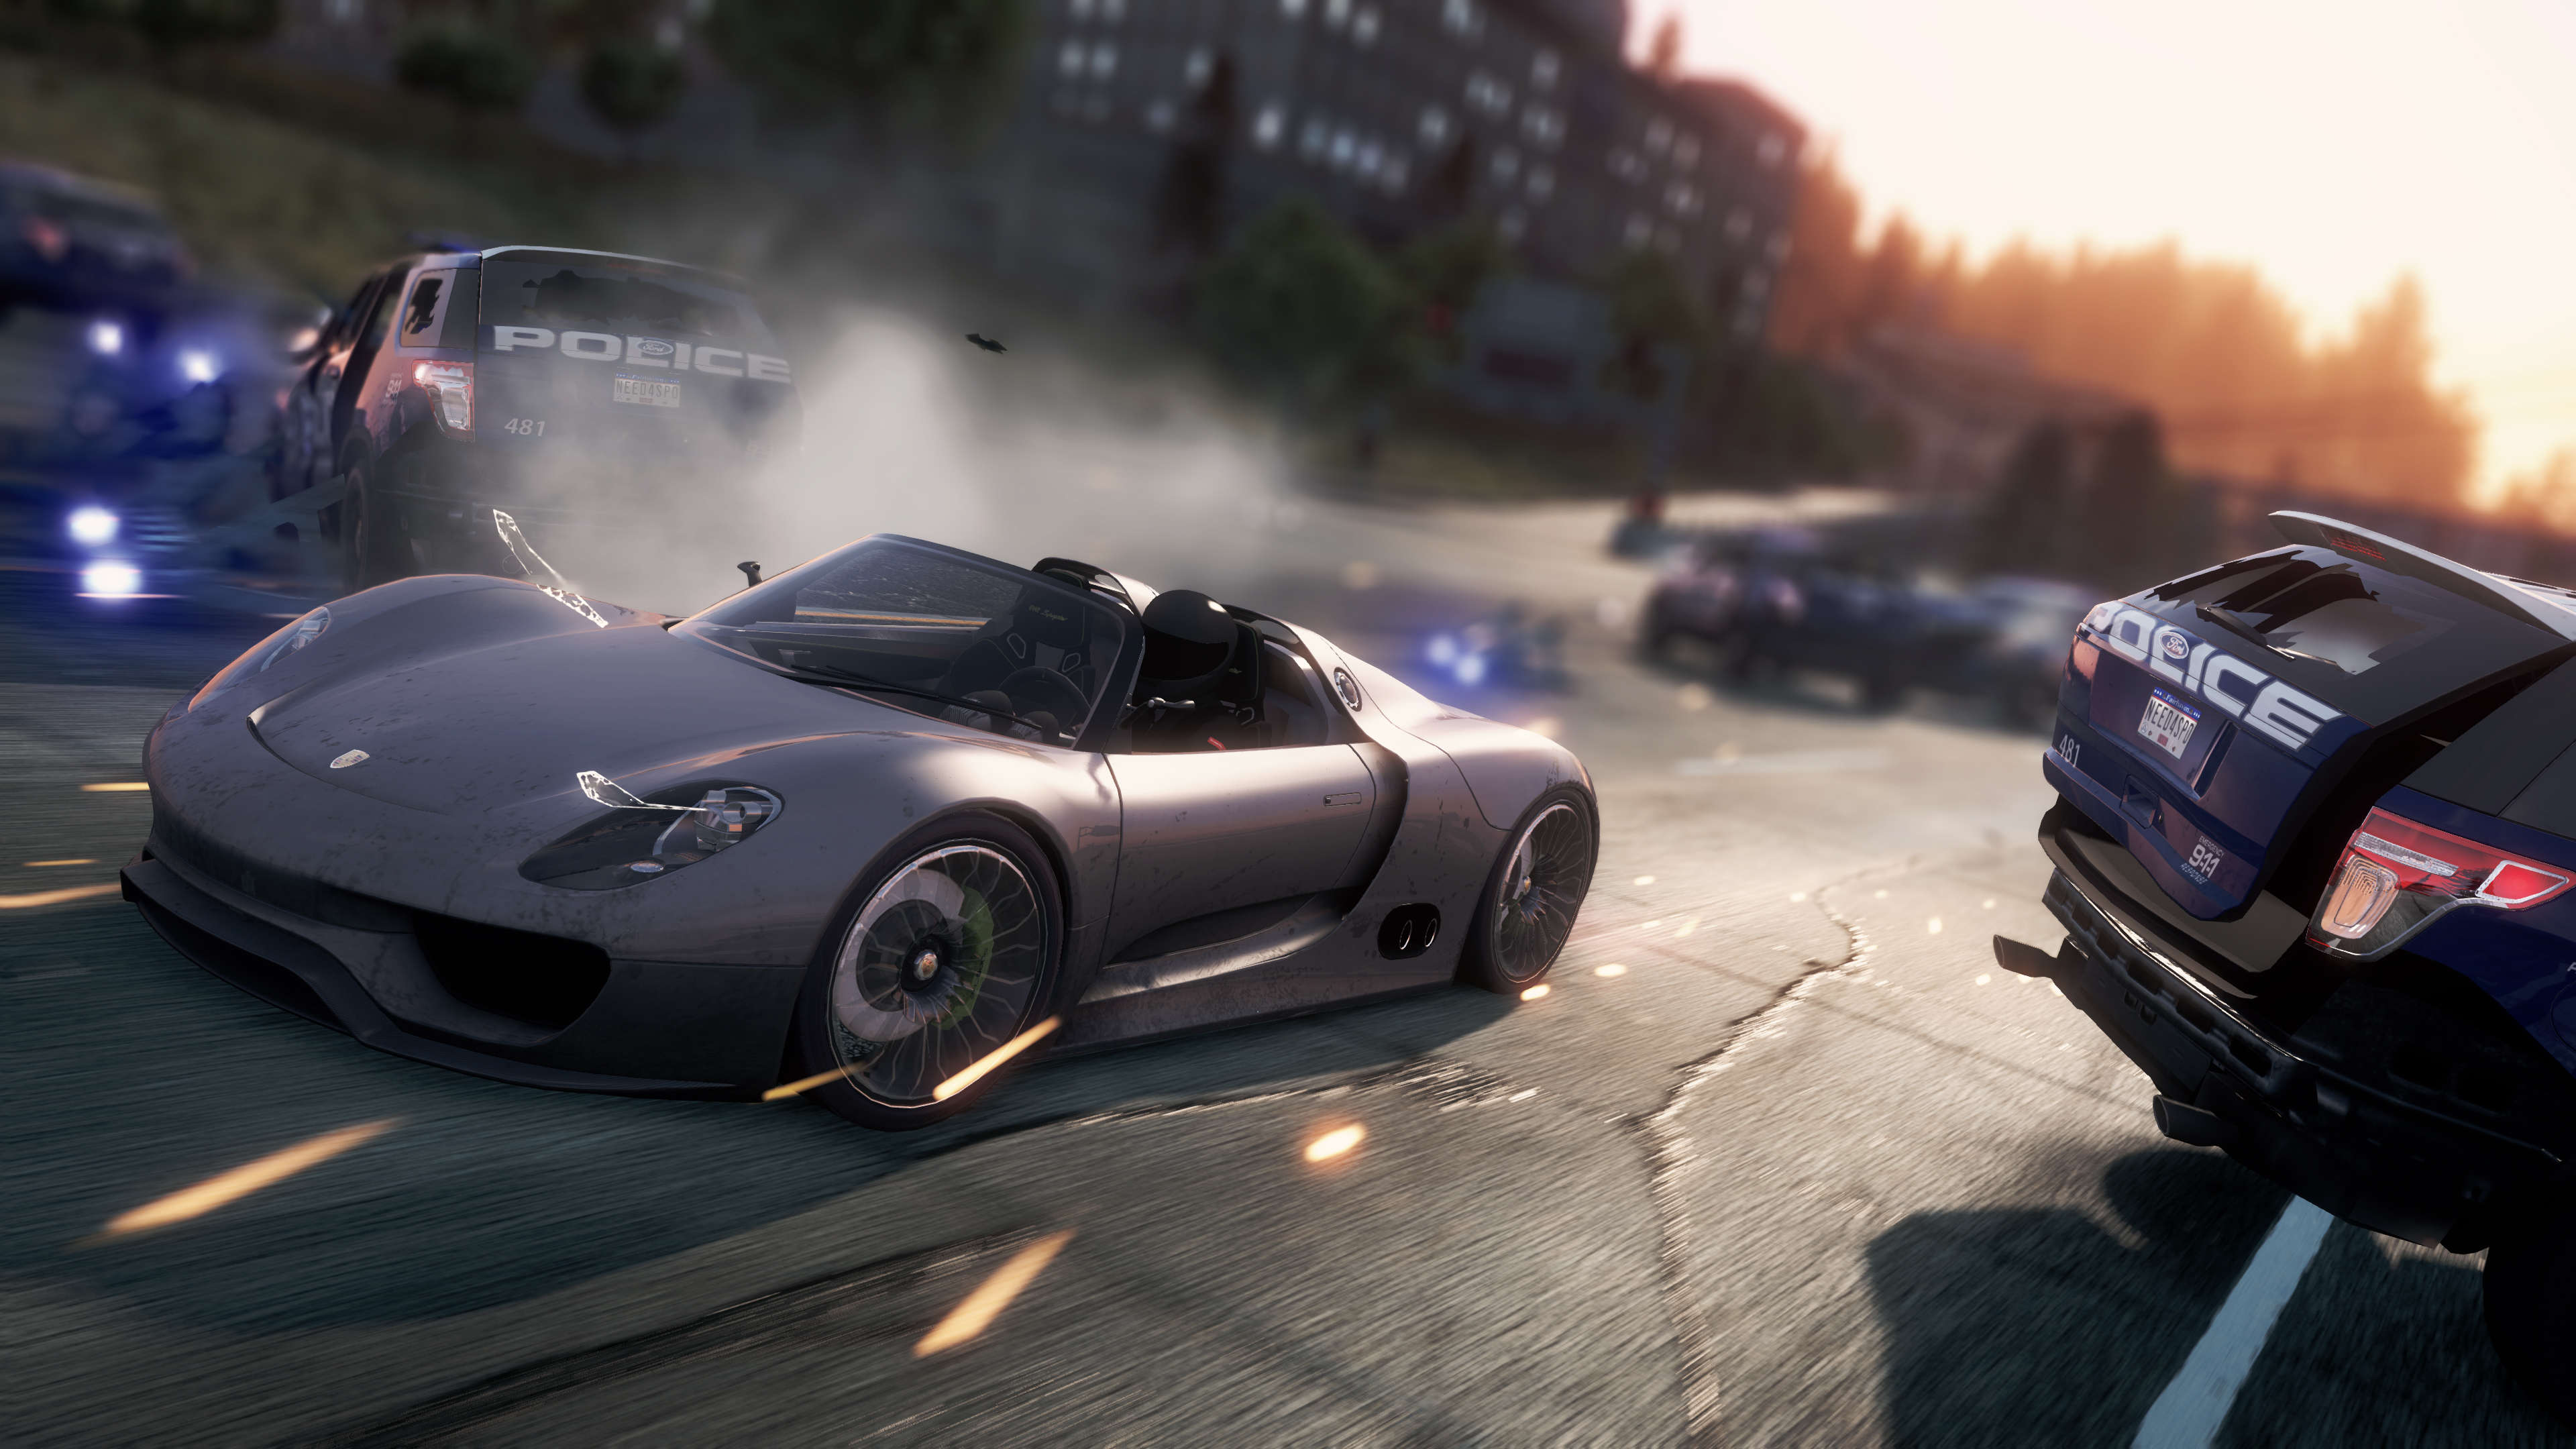 694193 Fabulous Need for Speed Most Wanted 2012 Porsche 918 Spyder Concept Location Cars Trend